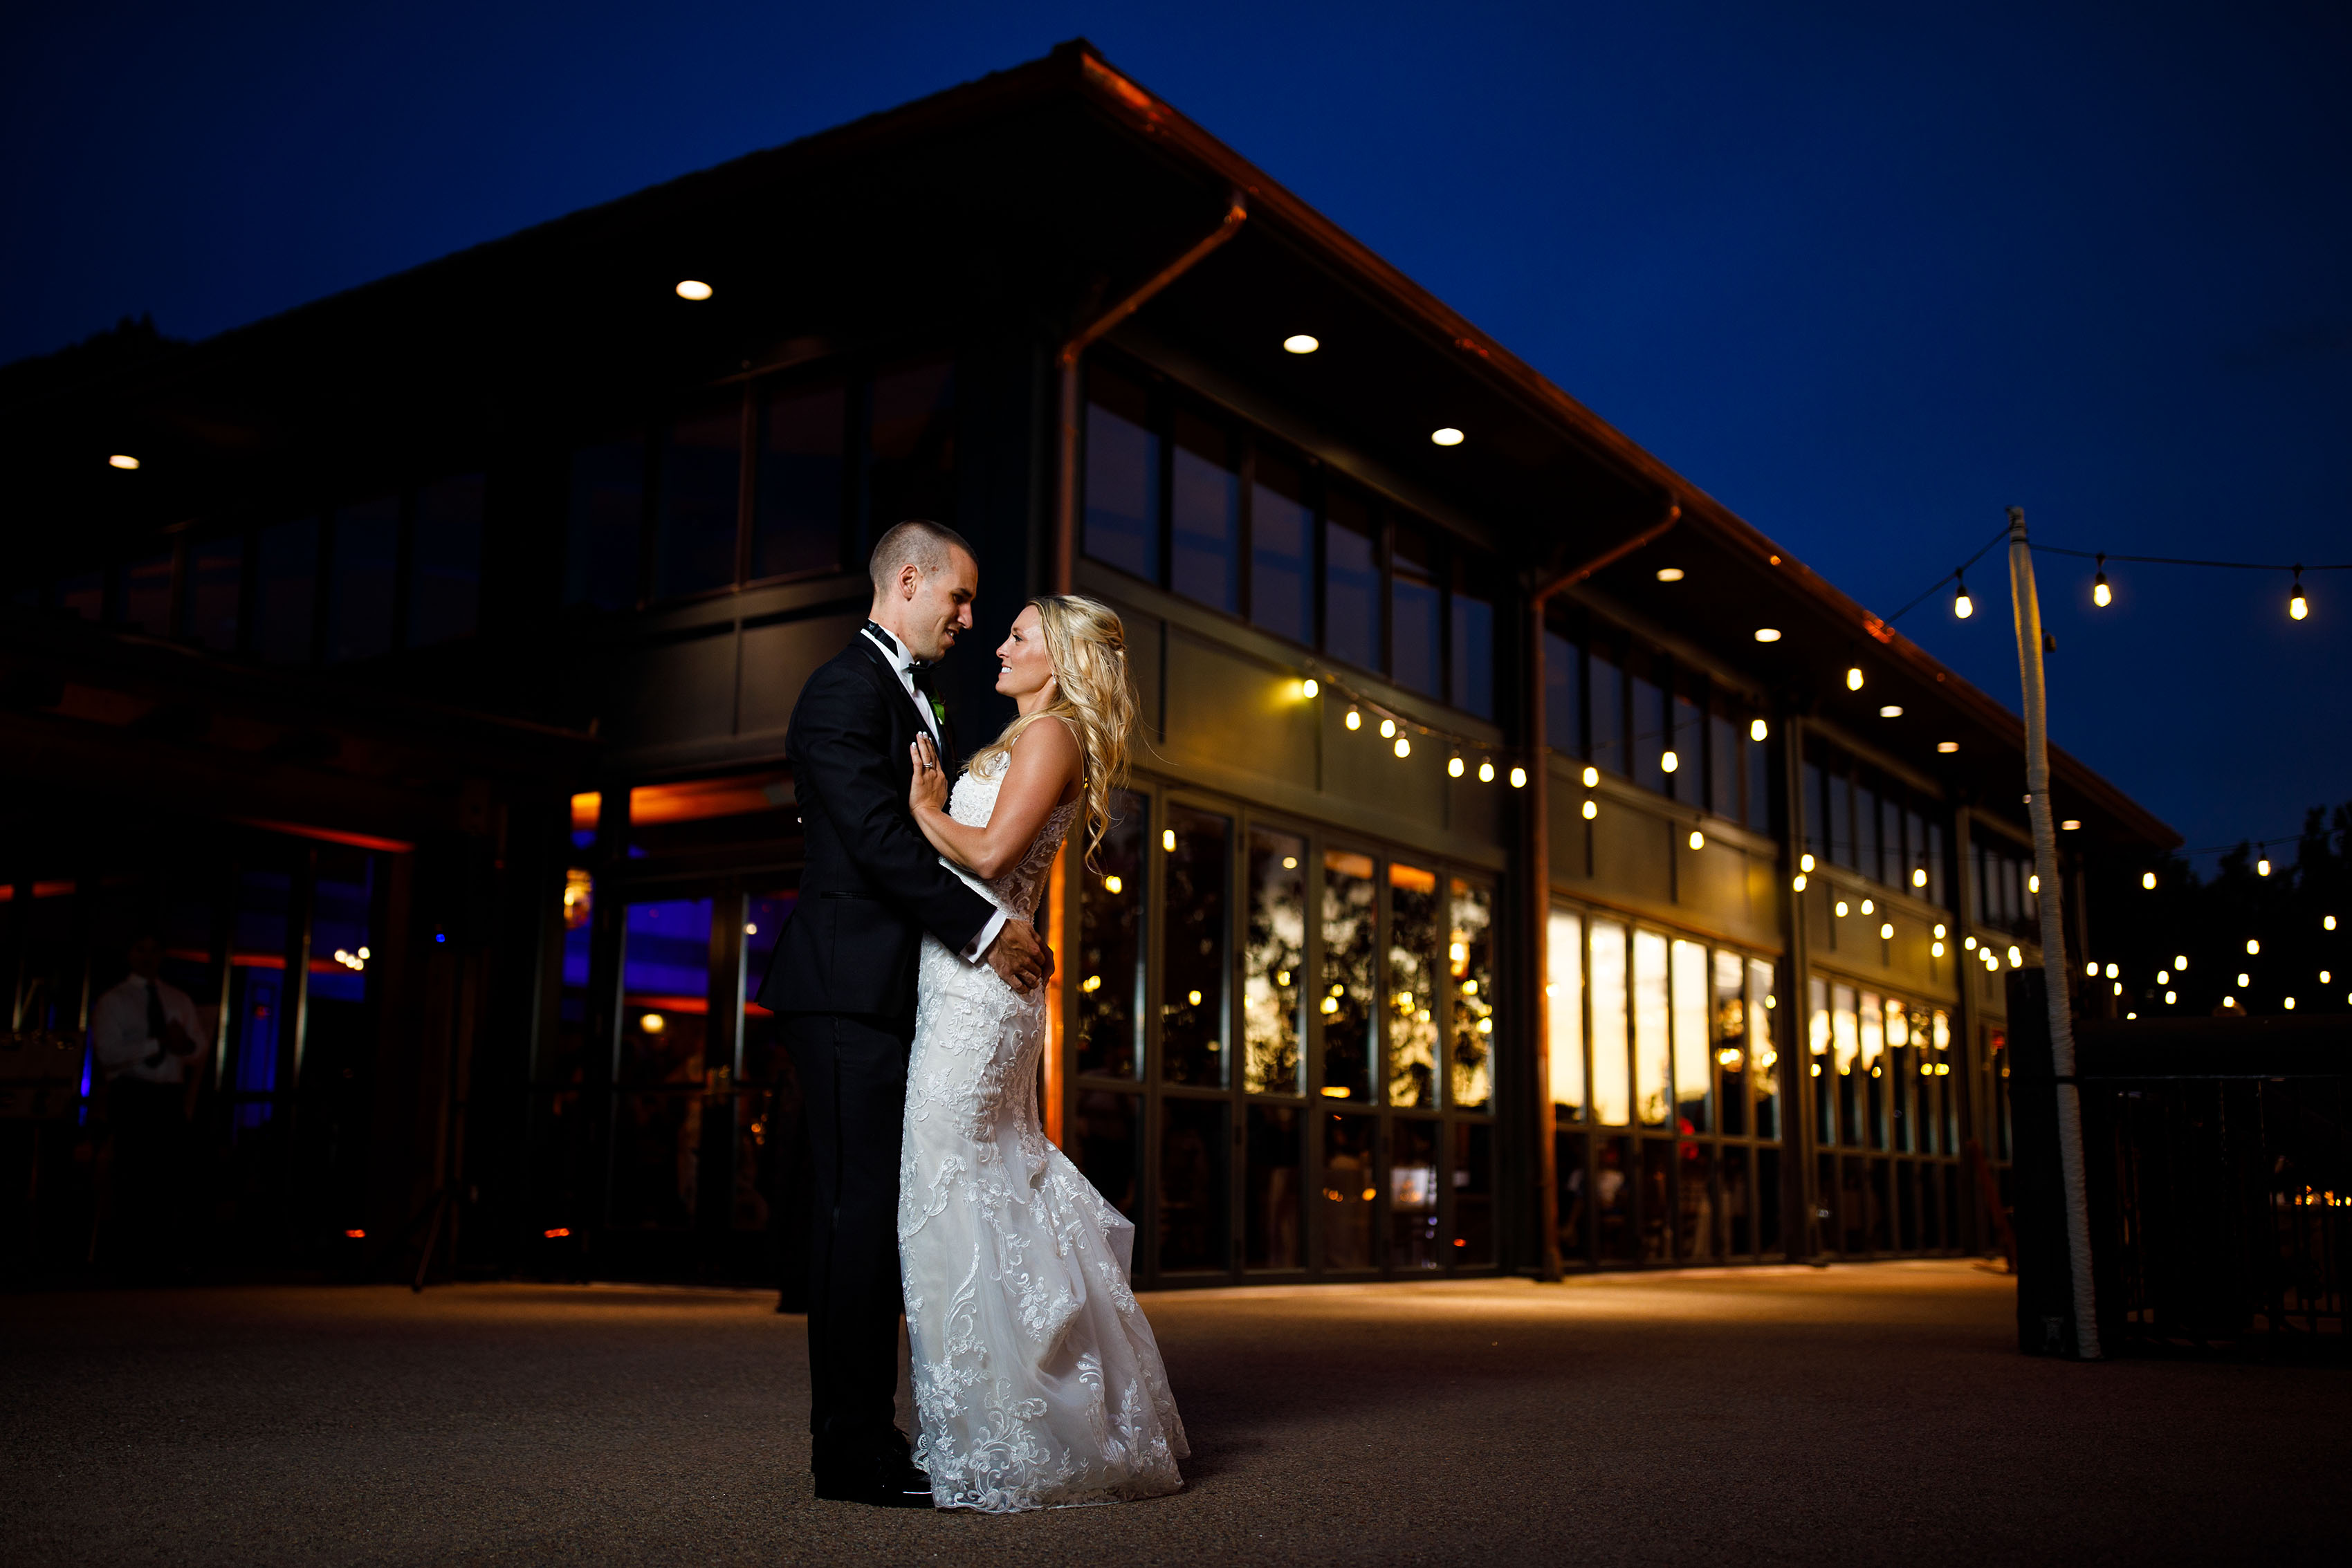 Kinsey and Sam share a moment together during twilight at The Broadmoor's Cheyenne Lodge on their wedding day